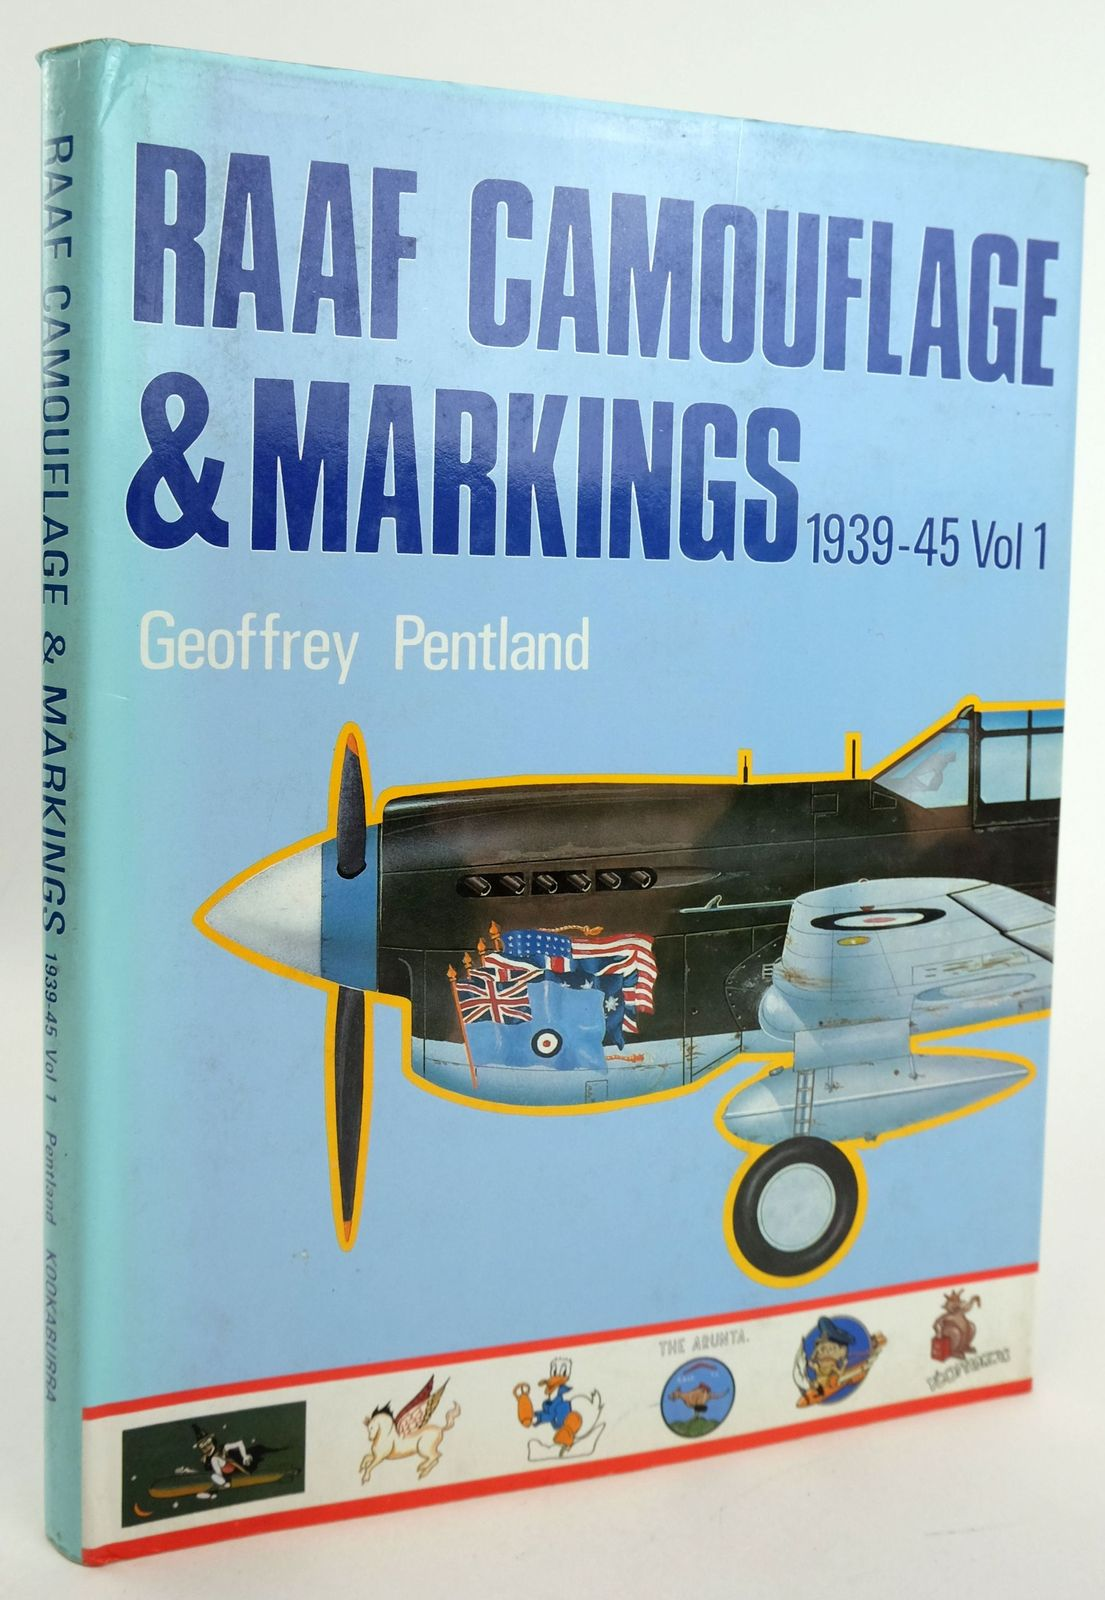 Photo of RAAF CAMOUFLAGE & MARKINGS 1939-45 VOL 1 written by Pentland, Geoffrey illustrated by Pentland, Geoffrey published by Kookaburra Technical Publications (STOCK CODE: 1819435)  for sale by Stella & Rose's Books